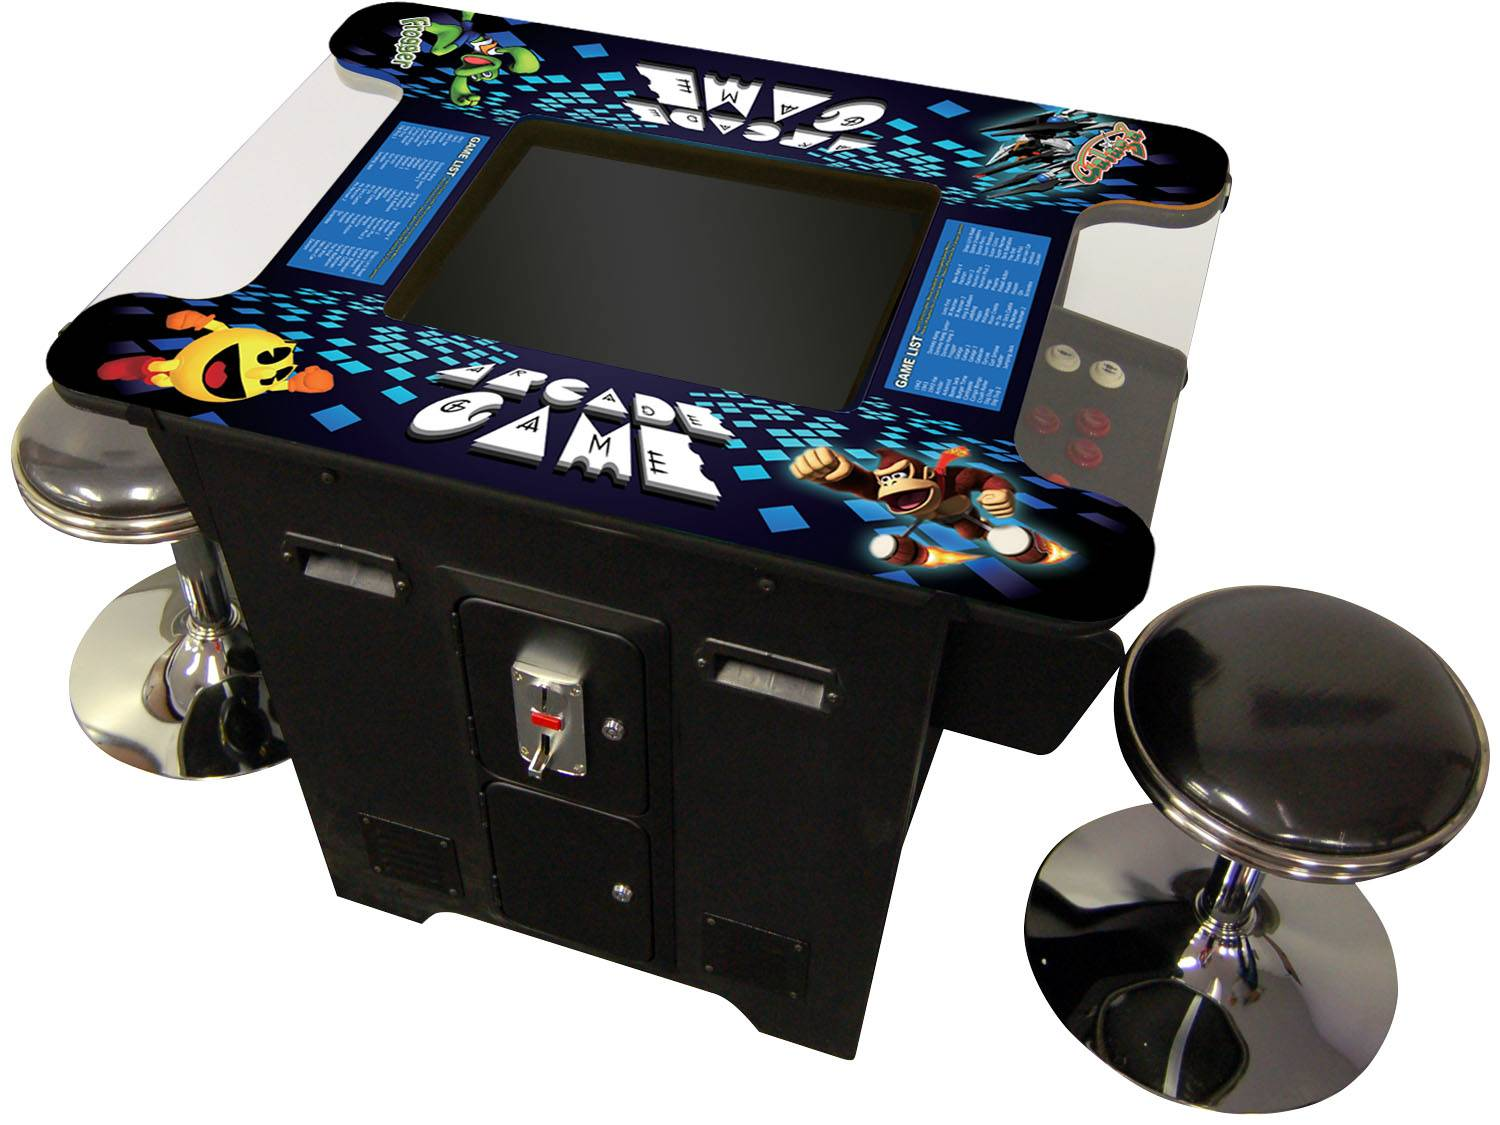 19 inch Cocktail Table Classic Game Machine For Pacman